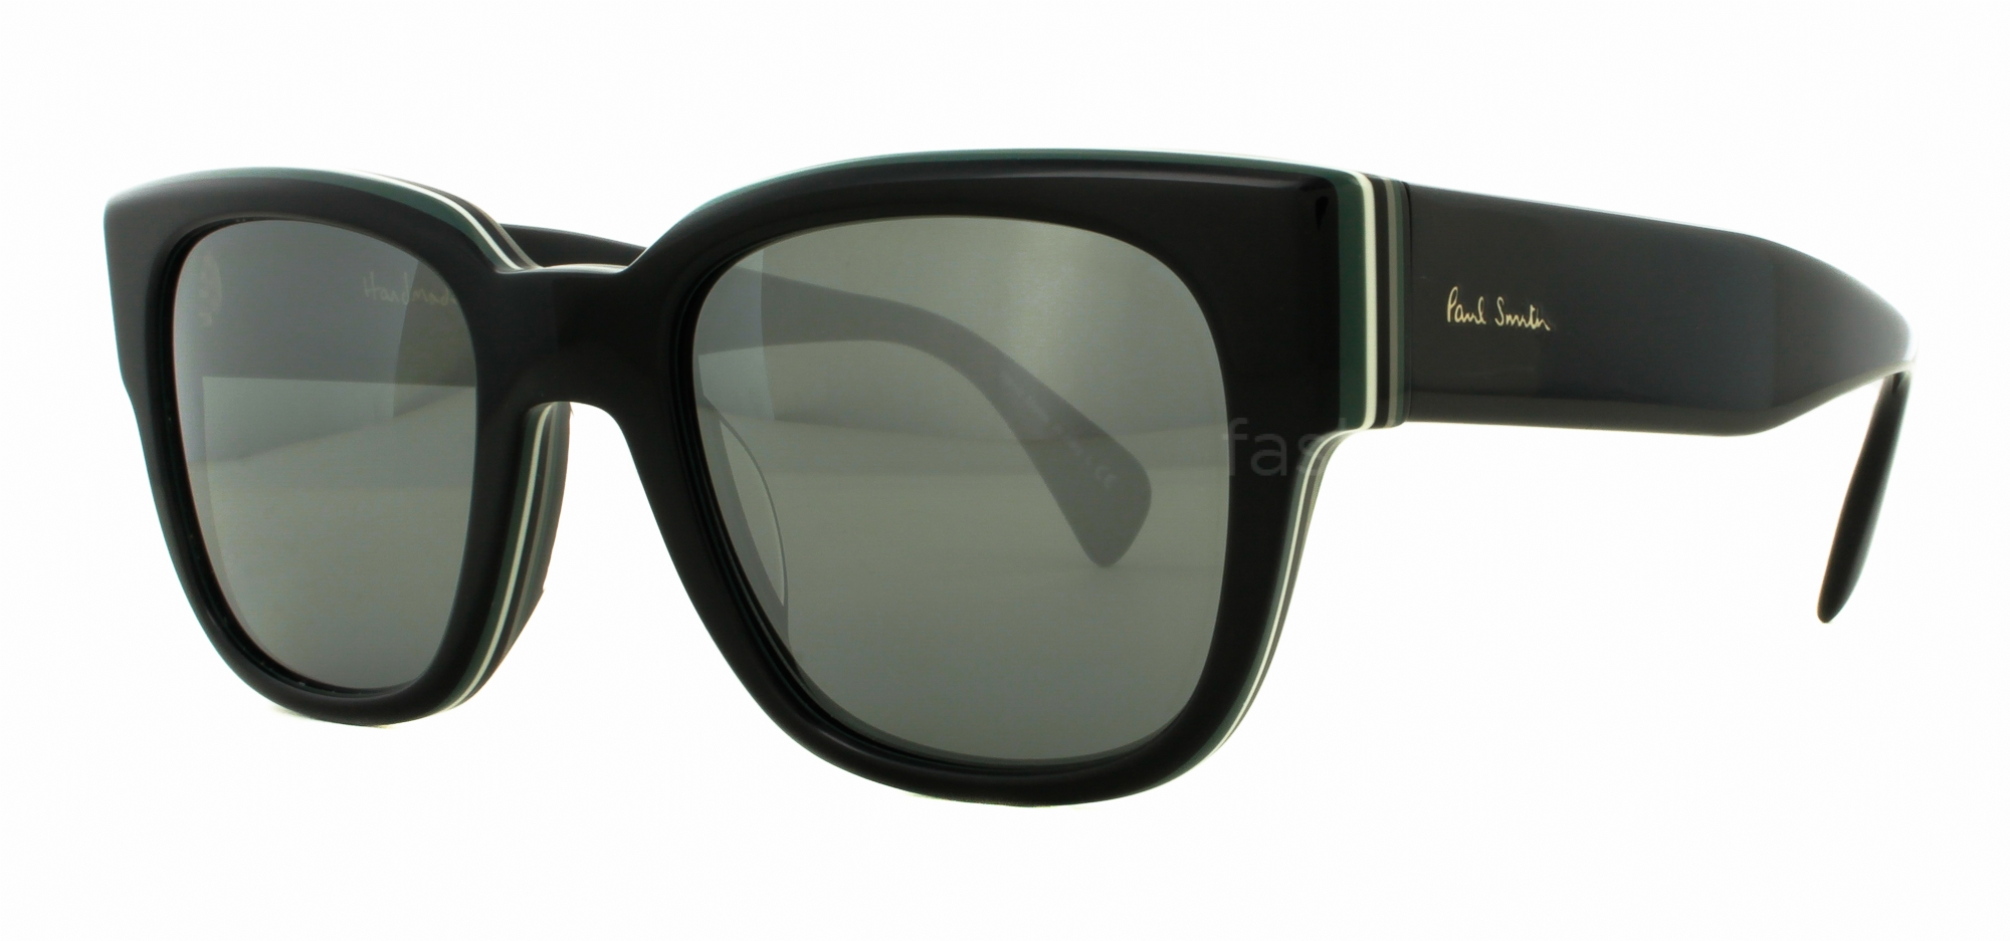 163688ca1b Buy Paul Smith Sunglasses directly from OpticsFast.com